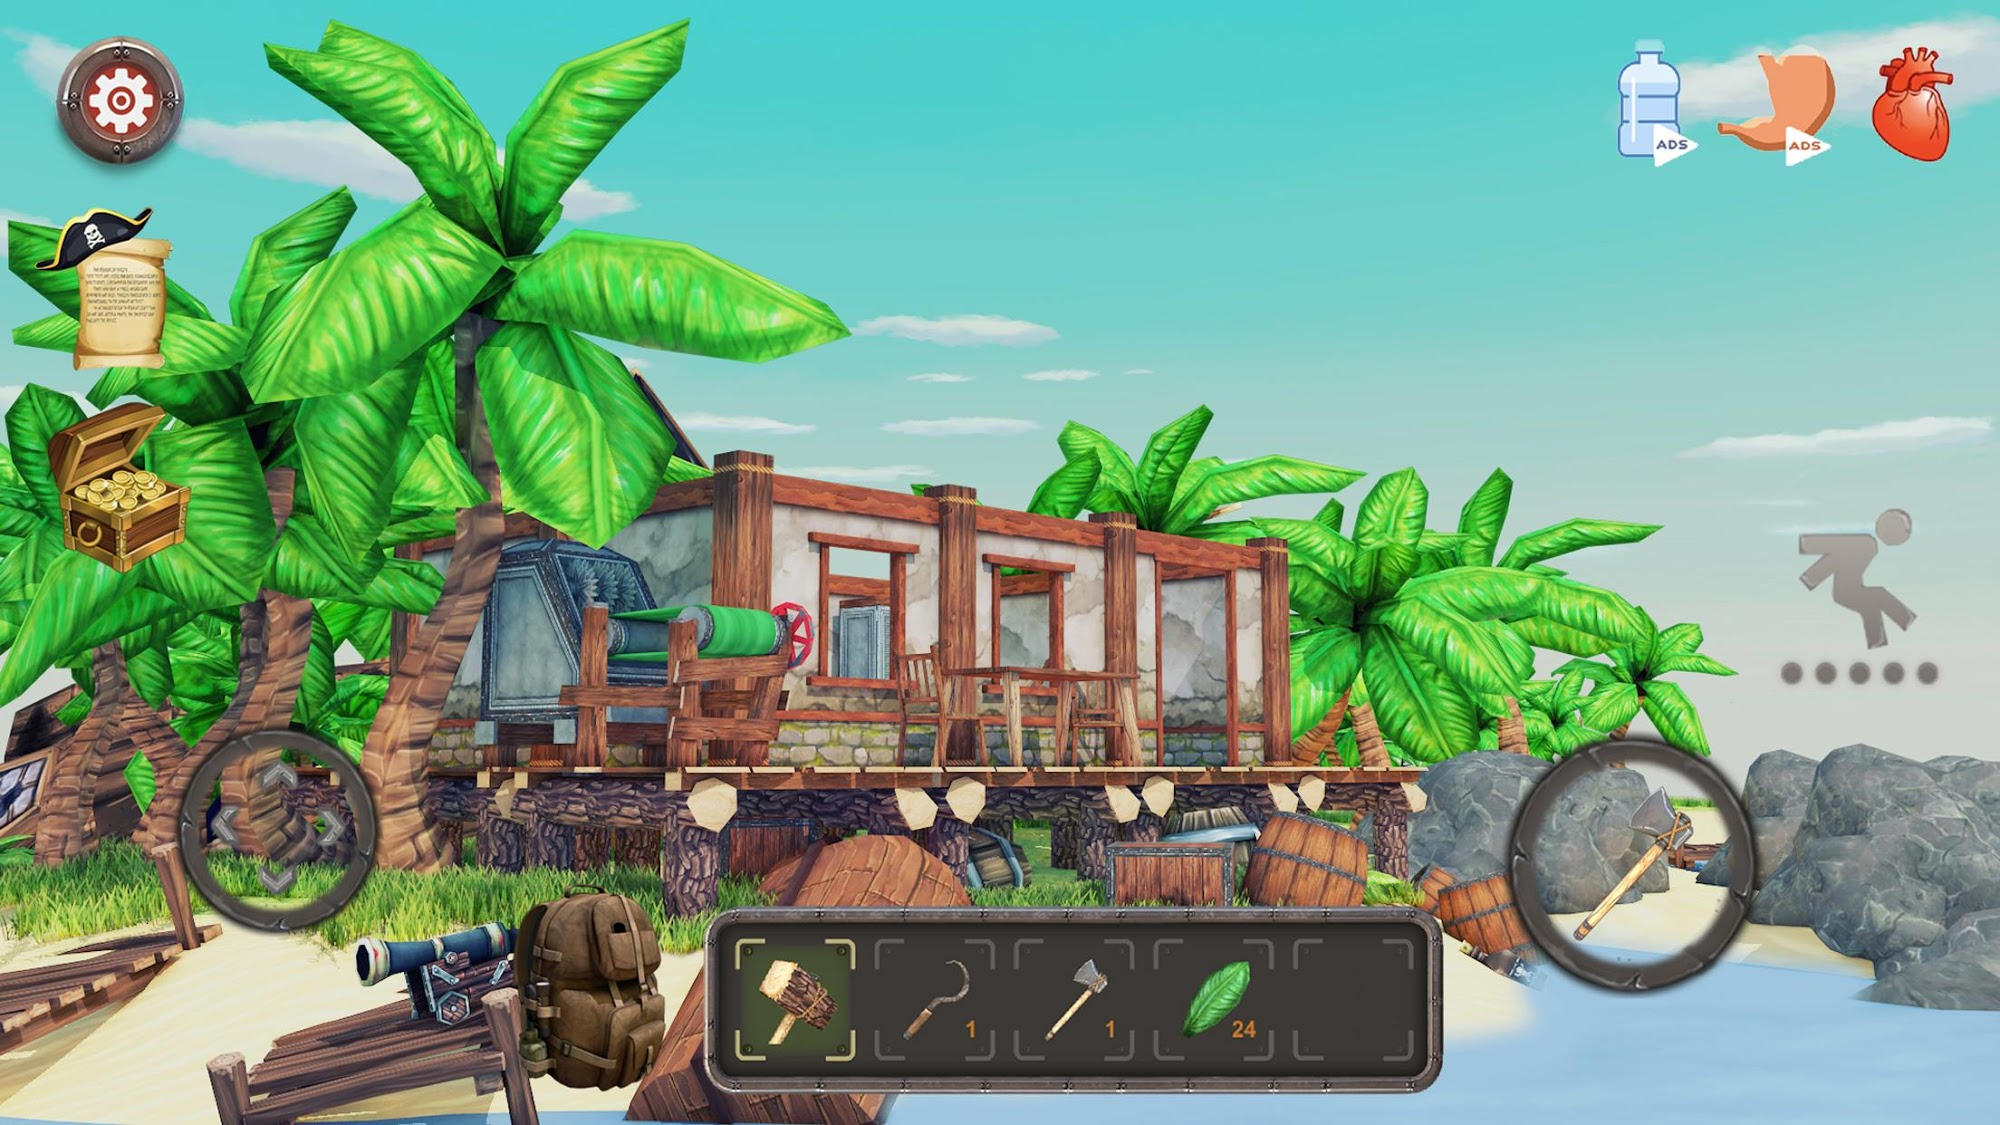 Raft Survival: Lost on Island - Simulator for Android